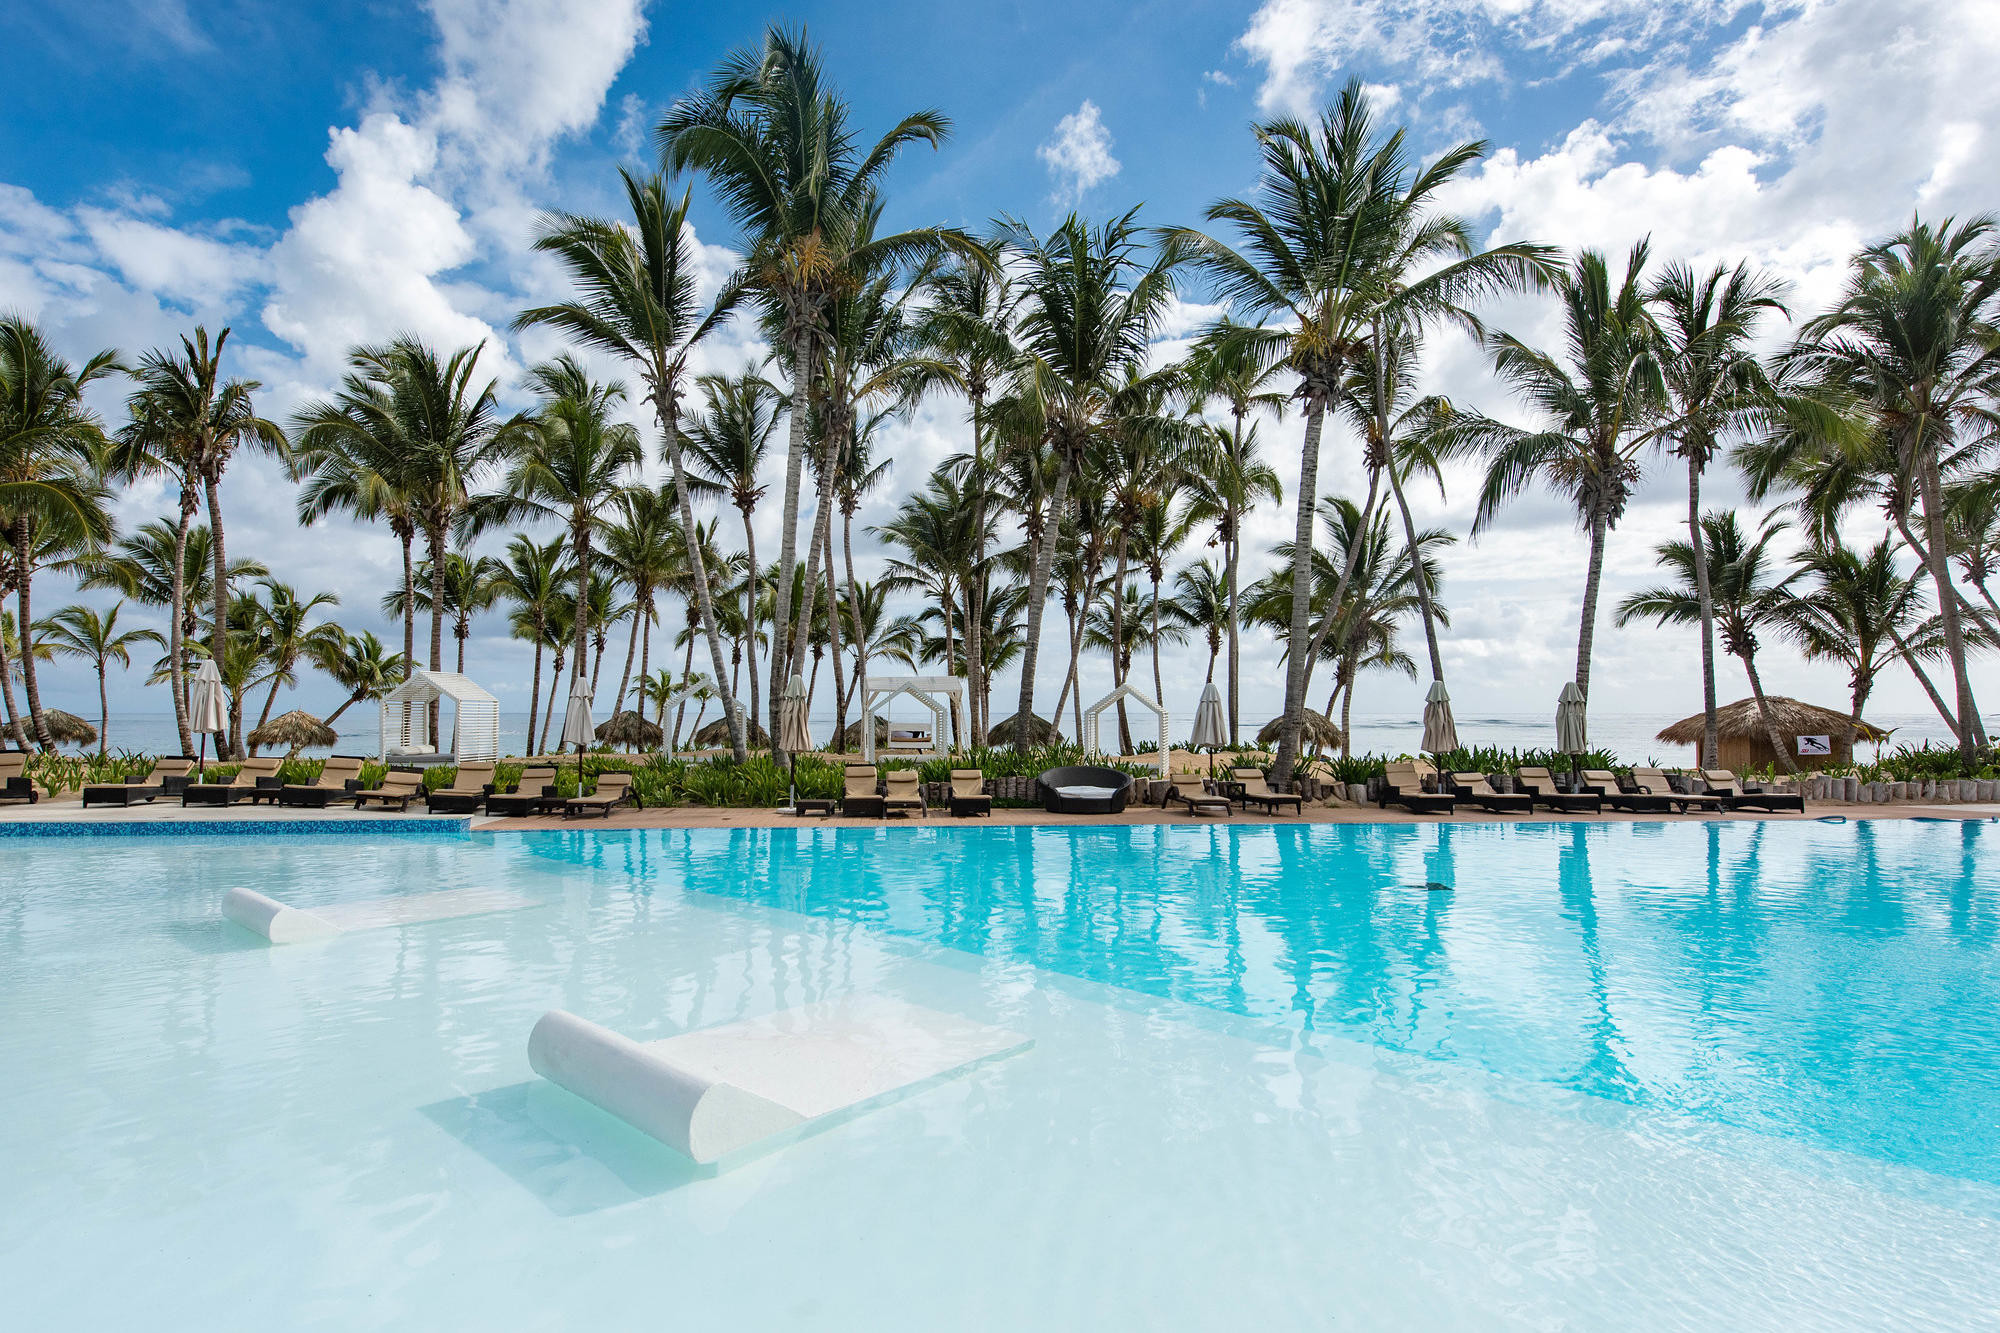 The pool at Le Sivory Punta Cana by PortBlue Boutique